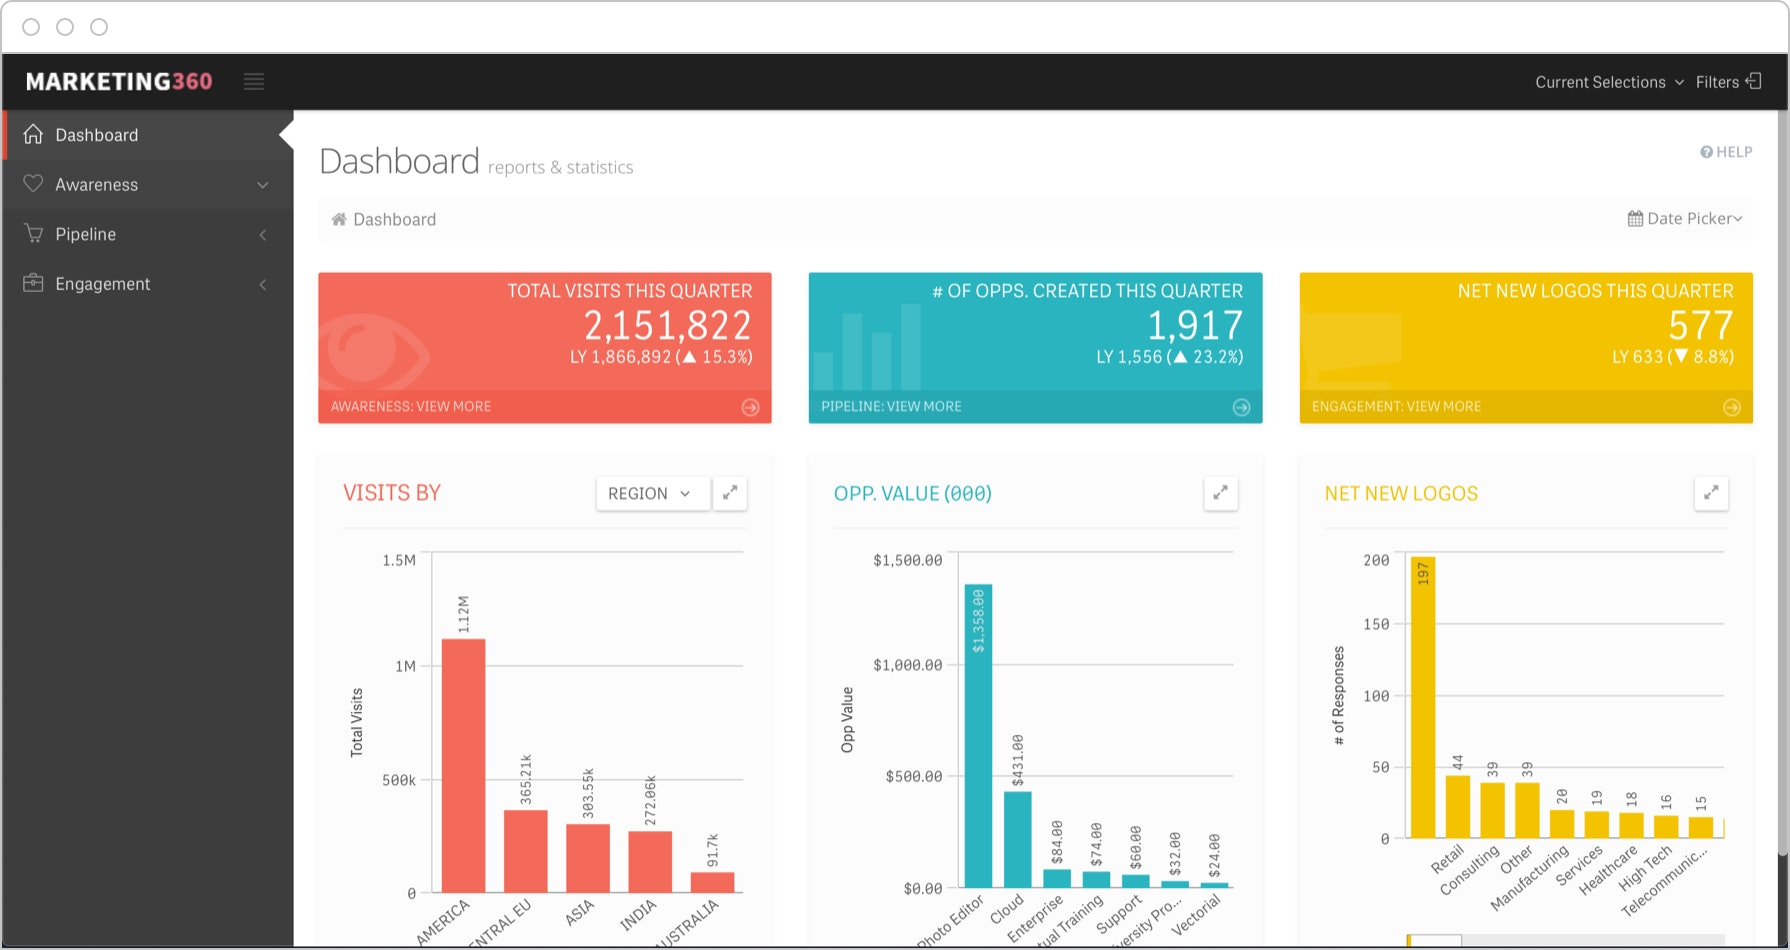 CMO Dashboards provide a real-time view of performance around KPIs across the entire marketing funnel.